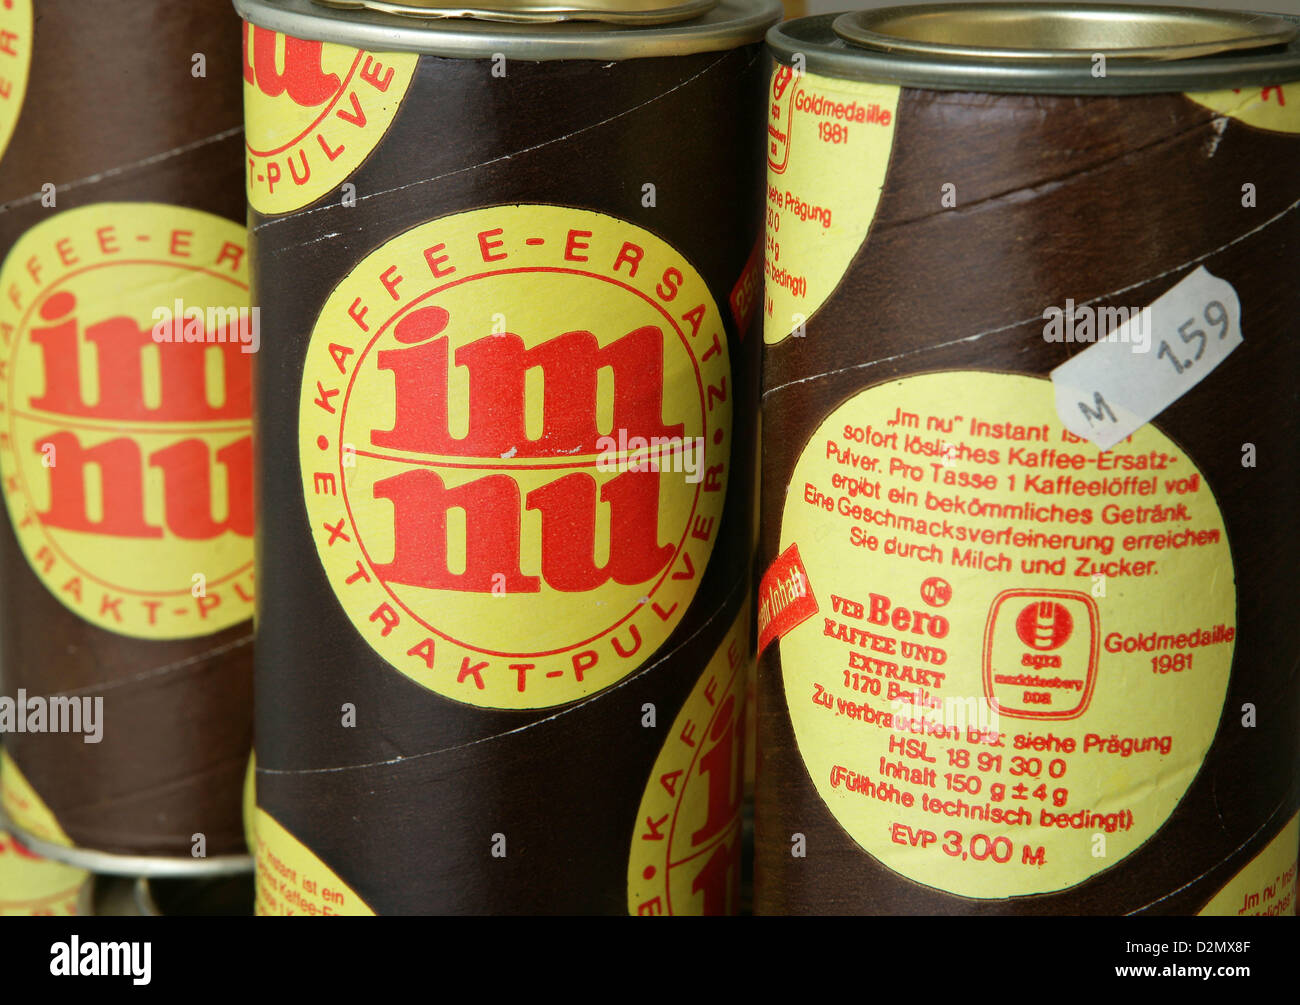 Boxes with the coffee substitute 'im nu' (in an instant) produced in the GDR are pictured at Dokumentationszentrum - Stock Image